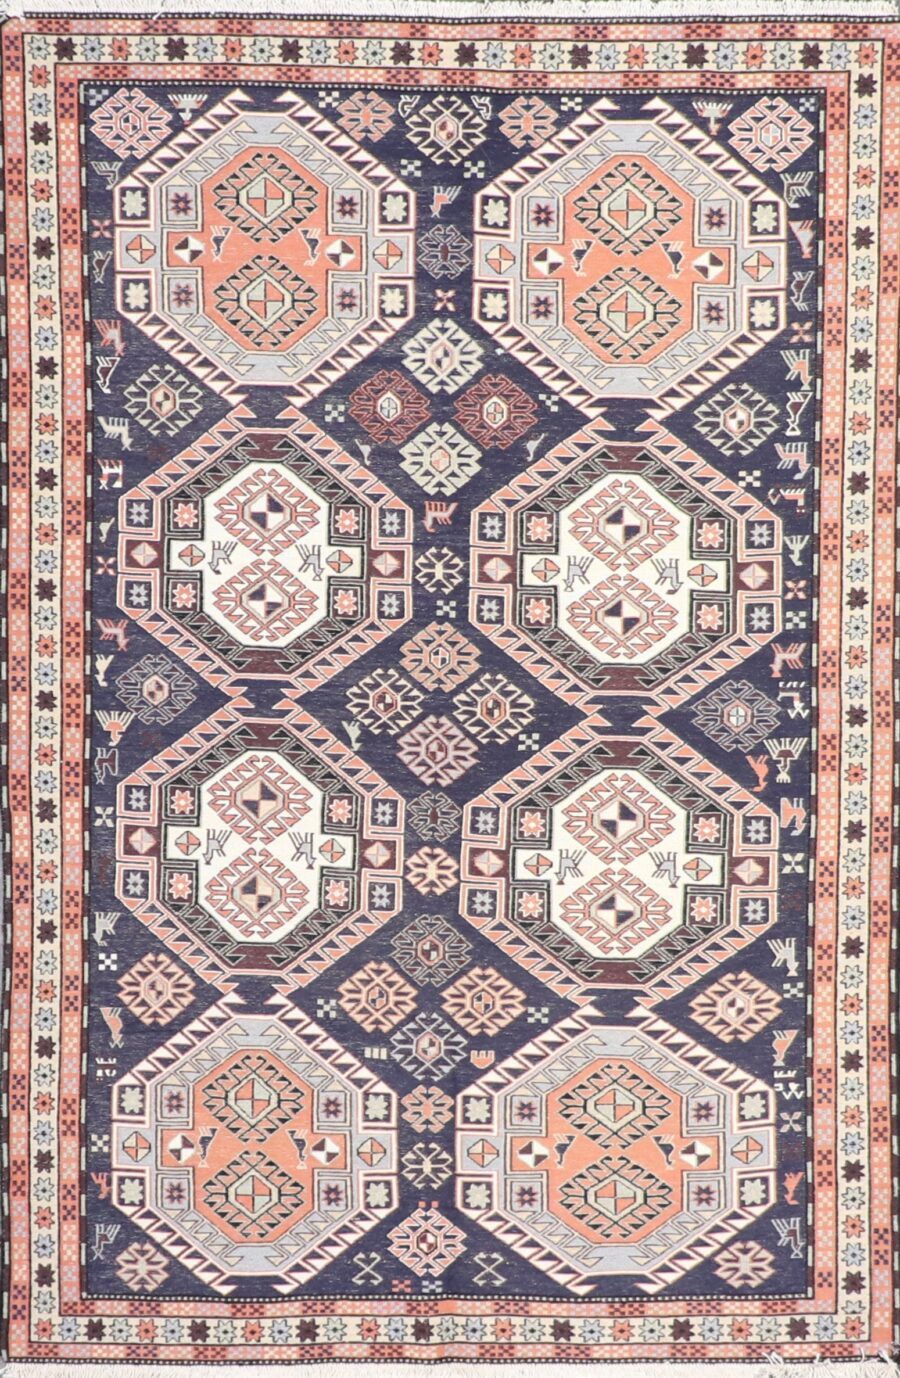 """4'2""""x6'4""""Persian Kilim Navy Wool Hand-Knotted Rug - Direct Rug Import   Rugs in Chicago, Indiana,South Bend,Granger"""